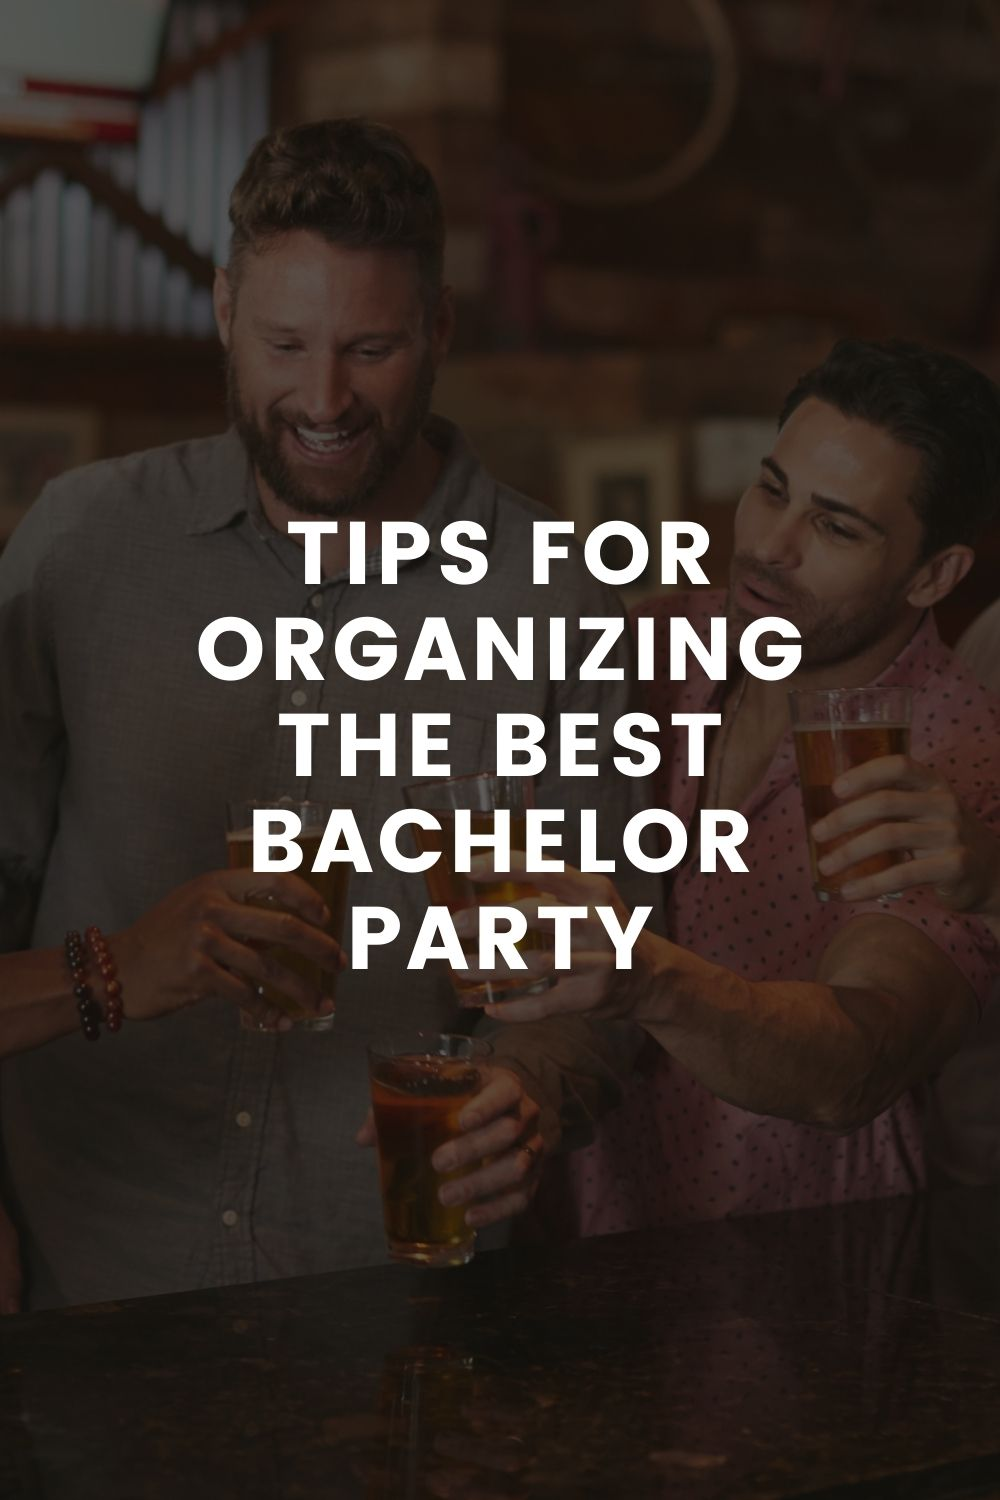 Tips For Organizing The Best Bachelor Party